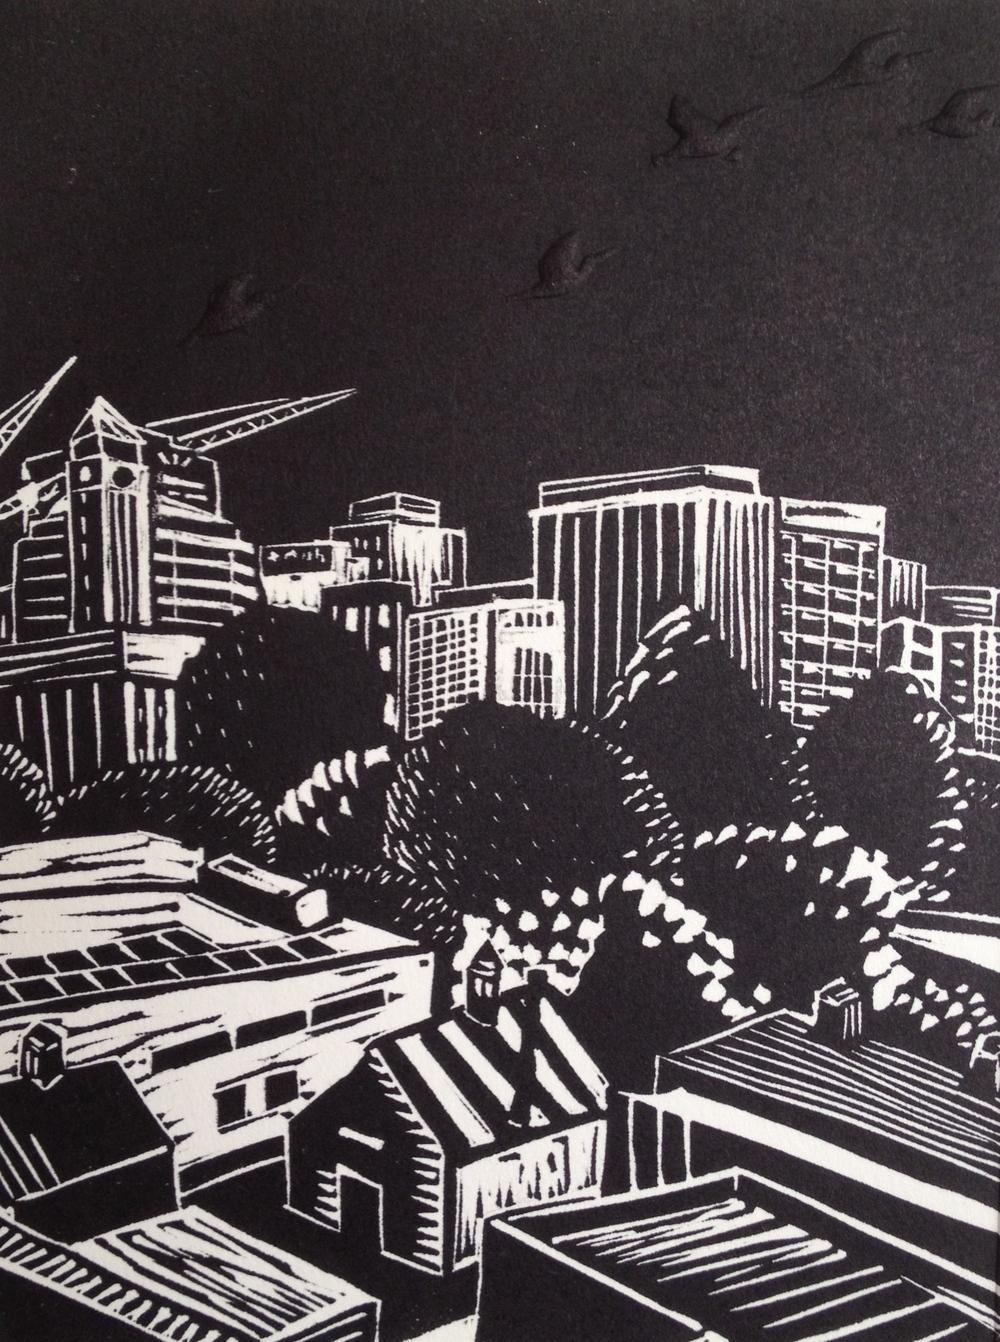 "Birds Over Adelaide: View from Schulz Building   Linocut with embossing, 2013  Edition of 3  Image size: 19 cm x 14.5 cm  Framed size:   $260 (only framed copy available)                      Normal   0           false   false   false     EN-AU   JA   X-NONE                                                                                                                                                                                                                                                                                                                                                                            /* Style Definitions */ table.MsoNormalTable 	{mso-style-name:""Table Normal""; 	mso-tstyle-rowband-size:0; 	mso-tstyle-colband-size:0; 	mso-style-noshow:yes; 	mso-style-priority:99; 	mso-style-parent:""""; 	mso-padding-alt:0cm 5.4pt 0cm 5.4pt; 	mso-para-margin:0cm; 	mso-para-margin-bottom:.0001pt; 	mso-pagination:widow-orphan; 	font-size:10.0pt; 	font-family:""Times New Roman"";}          Birds over Adelaide: View from Schulz Building    is inspired by the constantly changing skyline of Adelaide and the numerous cranes and construction sites currently seen in the city. Birds flying are symbols of the enlivening of Adelaide and our growth towards the sky."